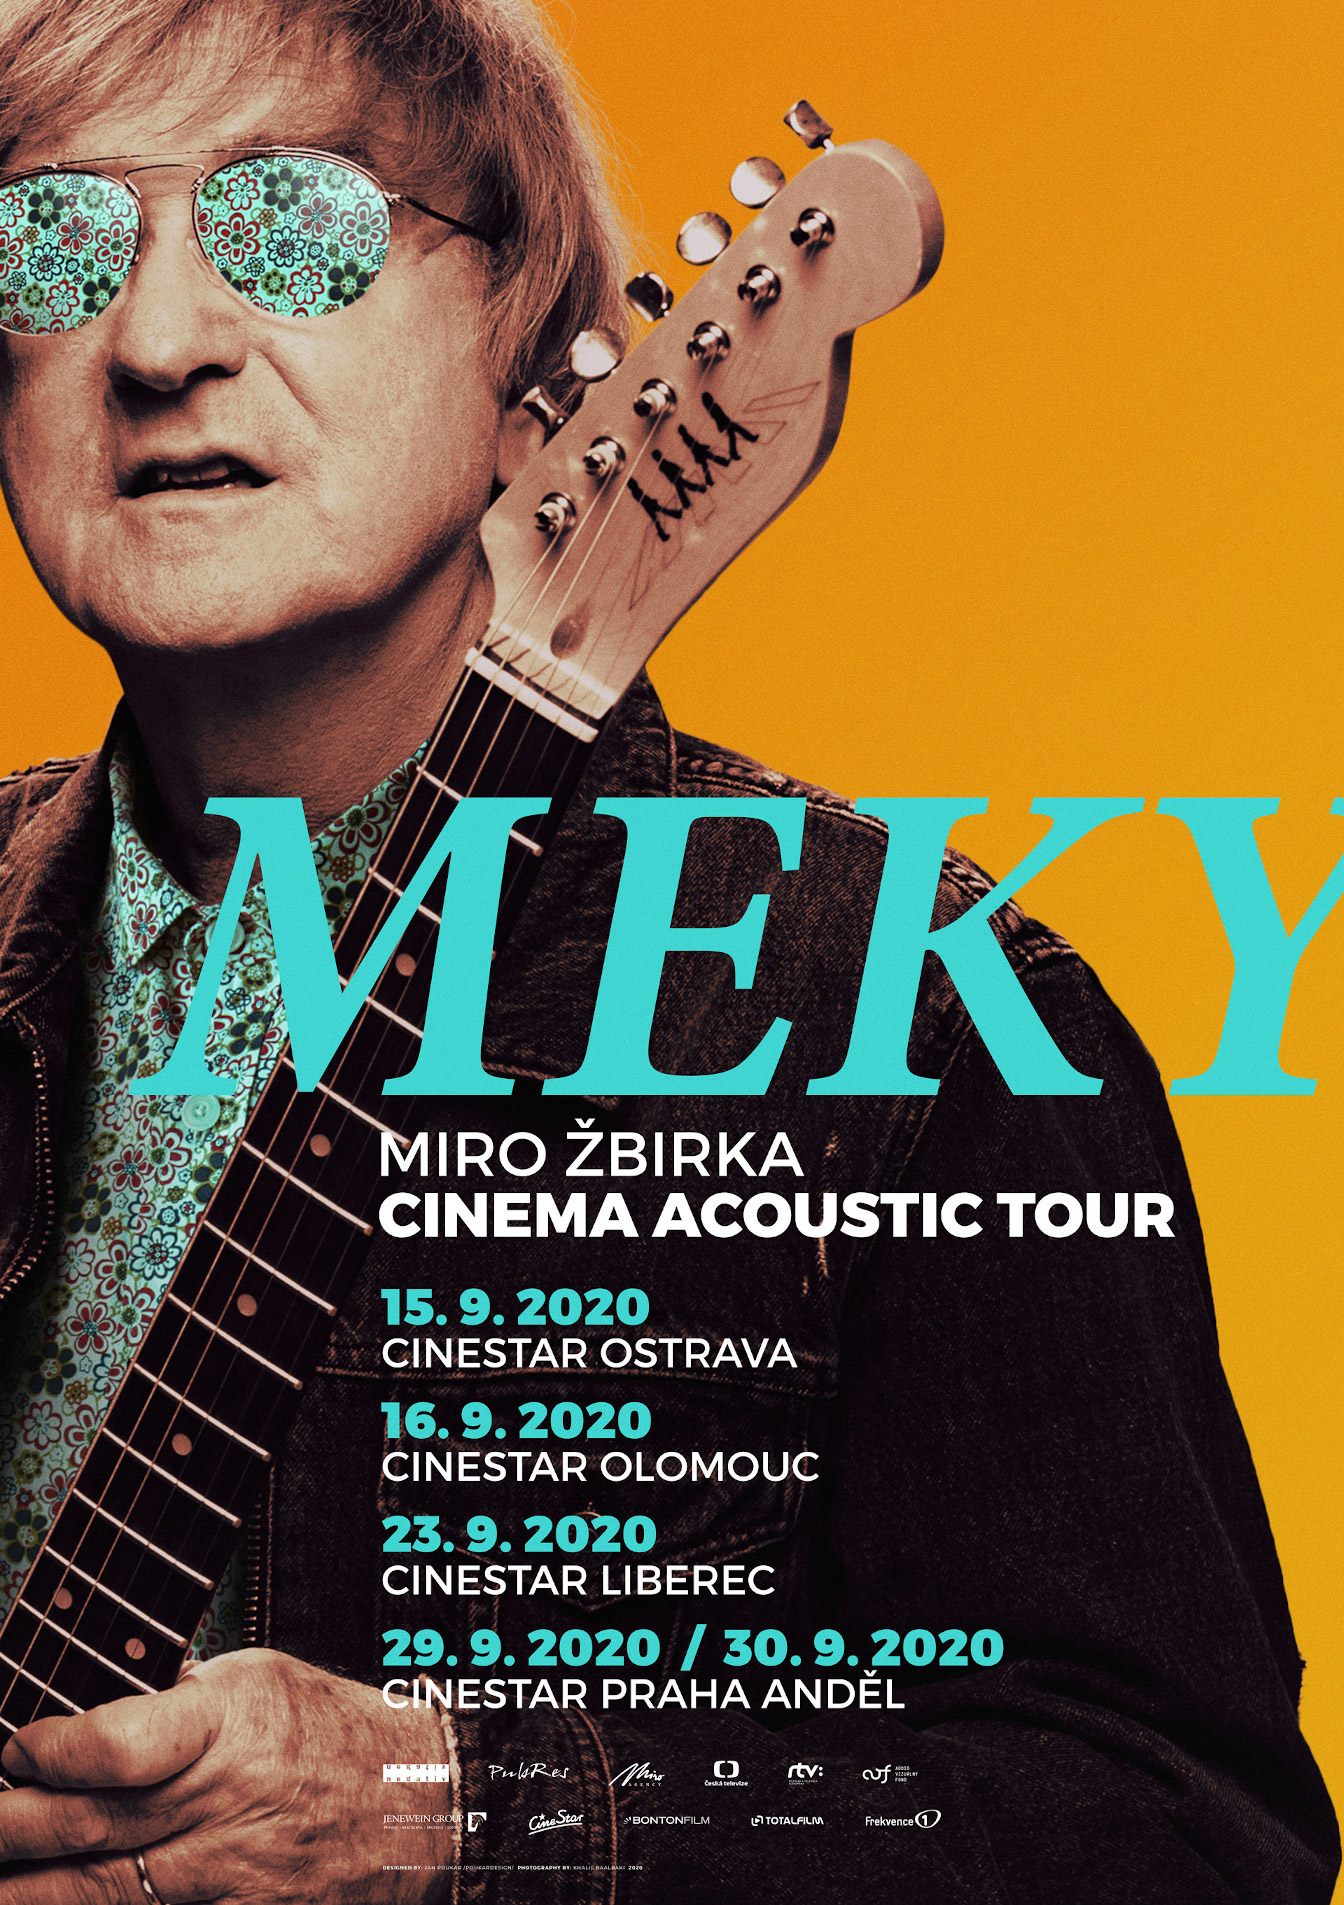 MEKY: Miro Žbirka cinema acoustic tour